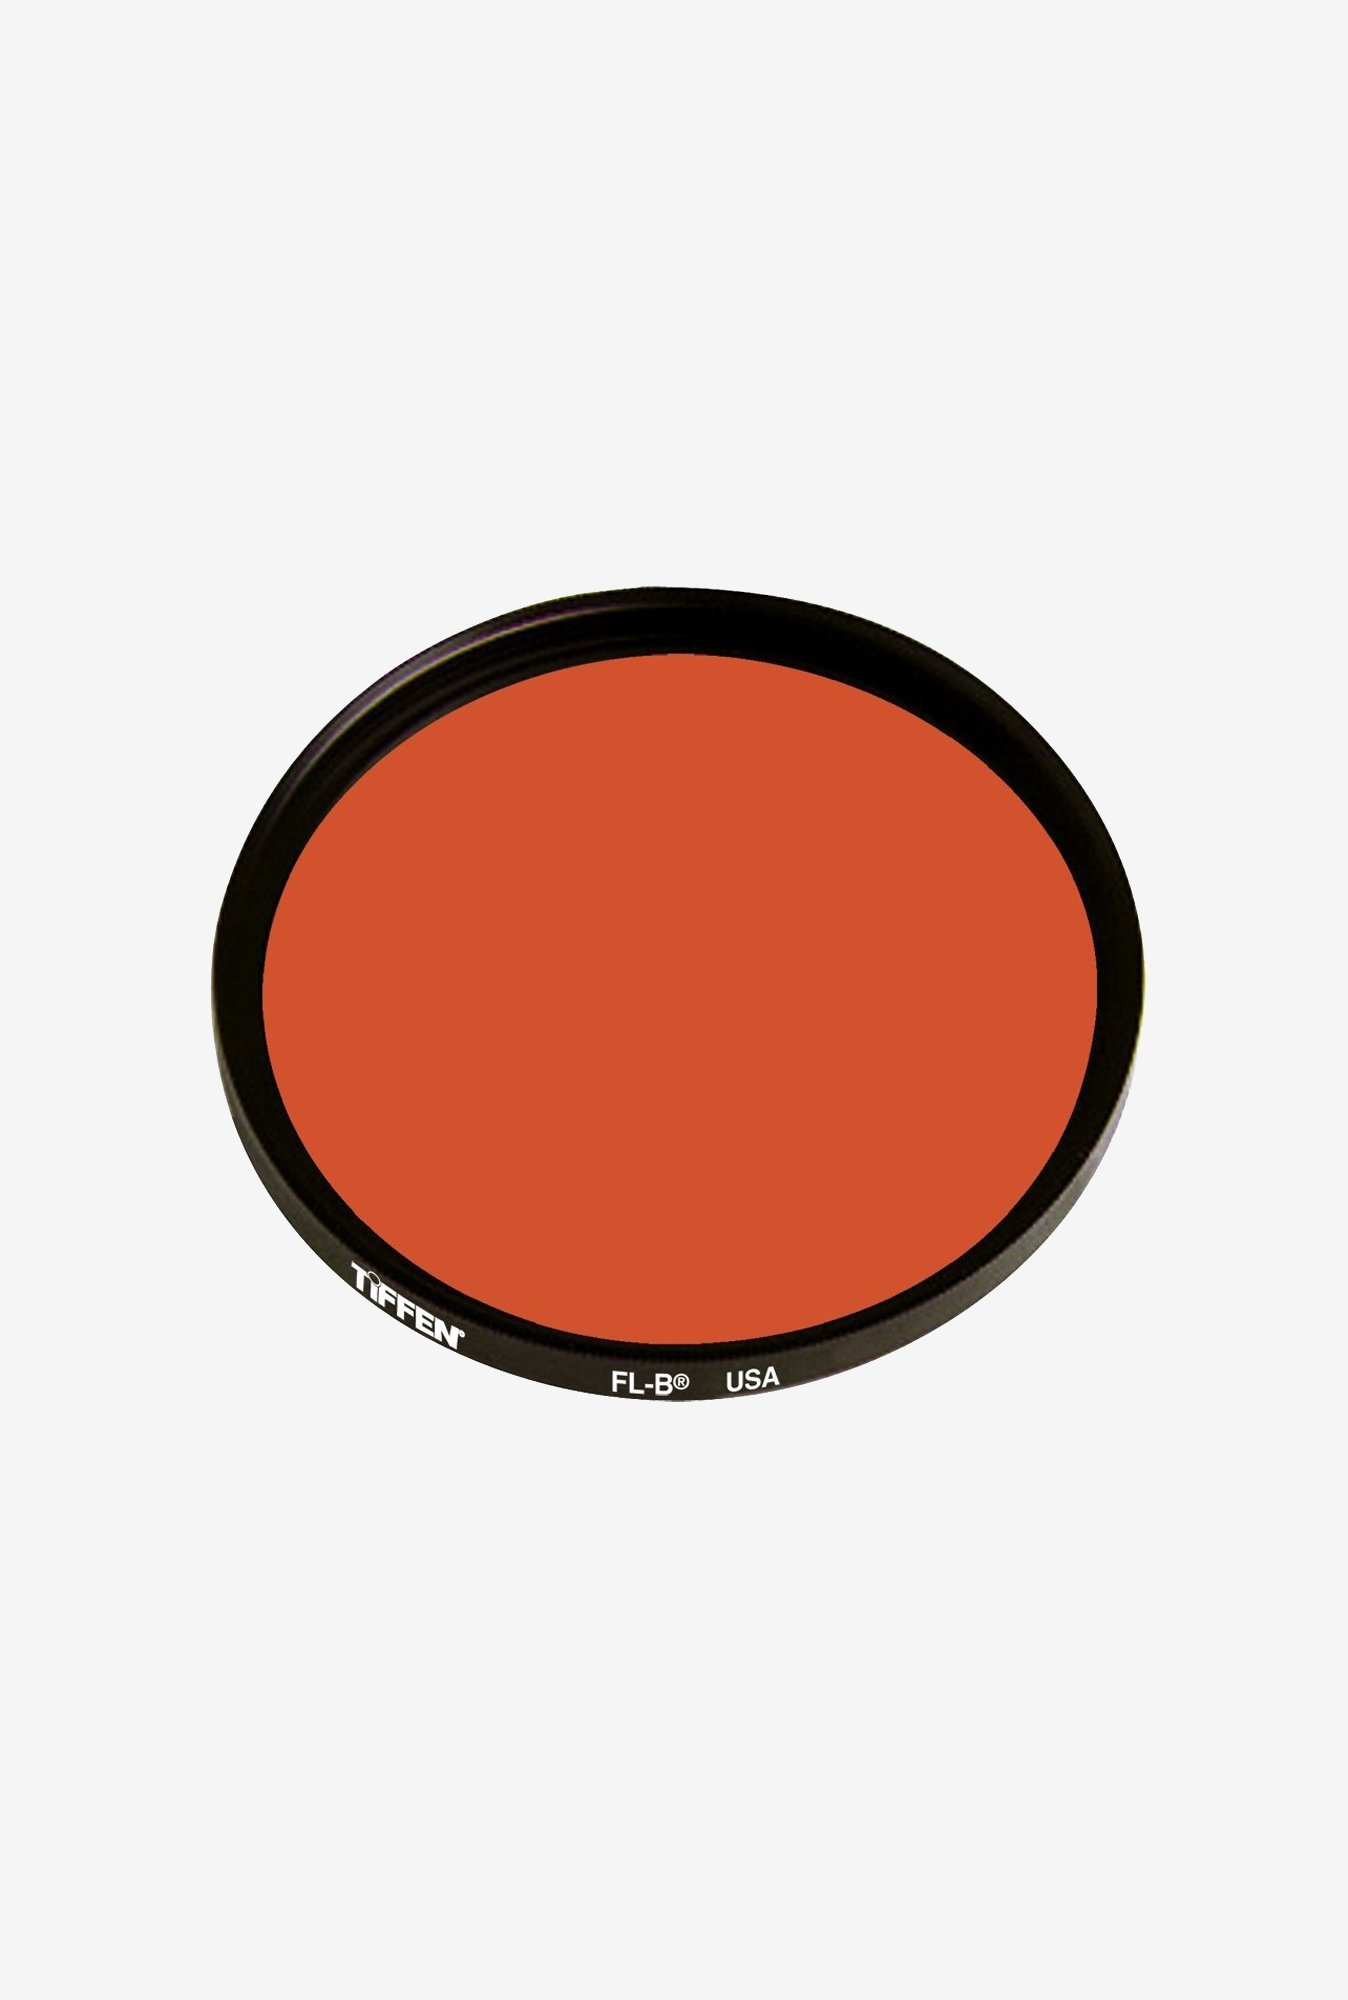 Tiffen 49FLB 49mm FLB Filter (Orange)